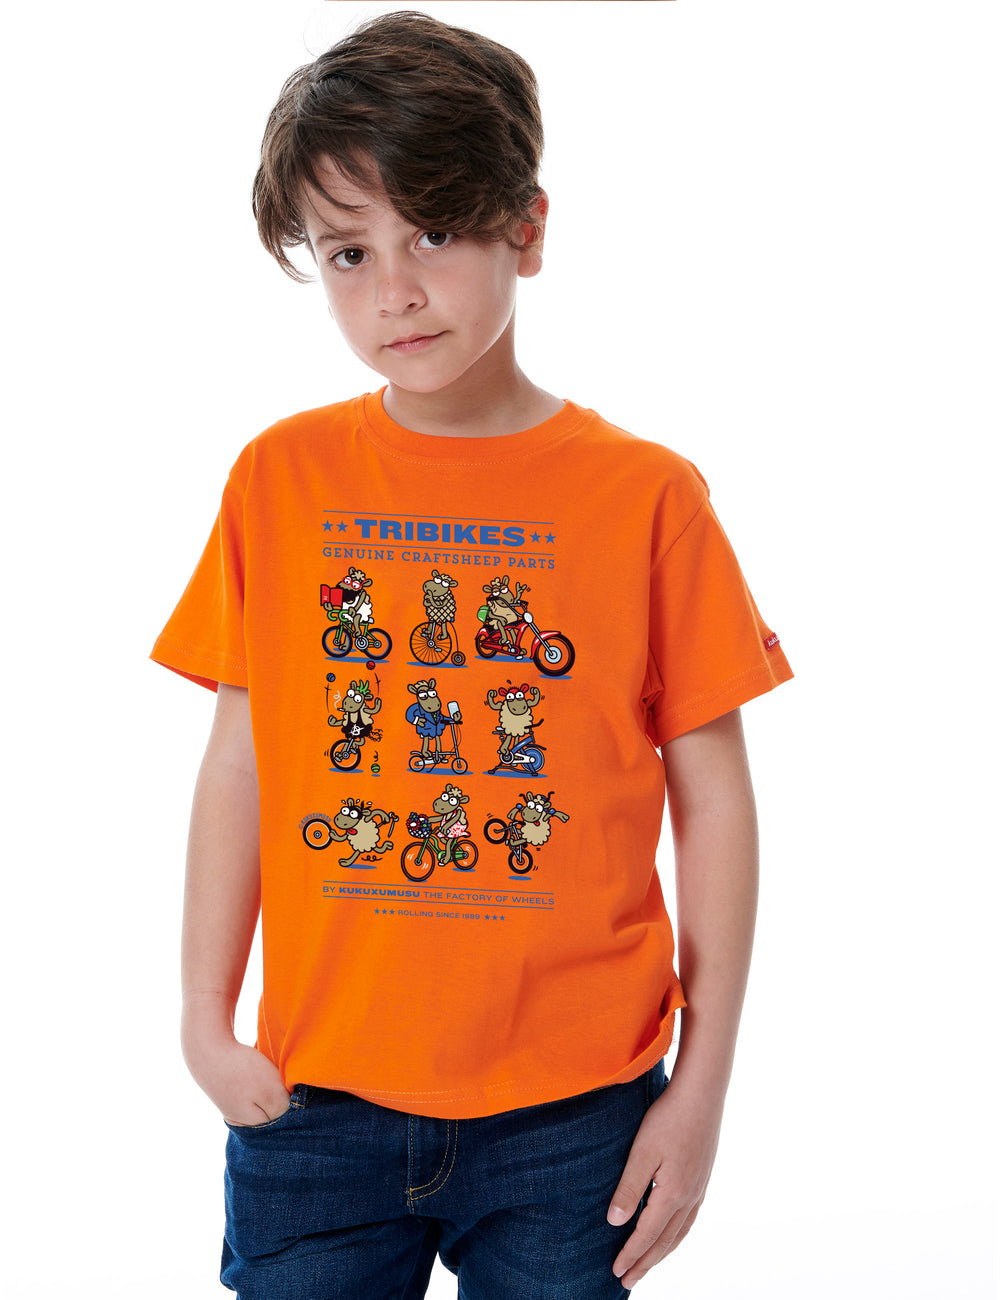 Tribikes Boys T-Shirt